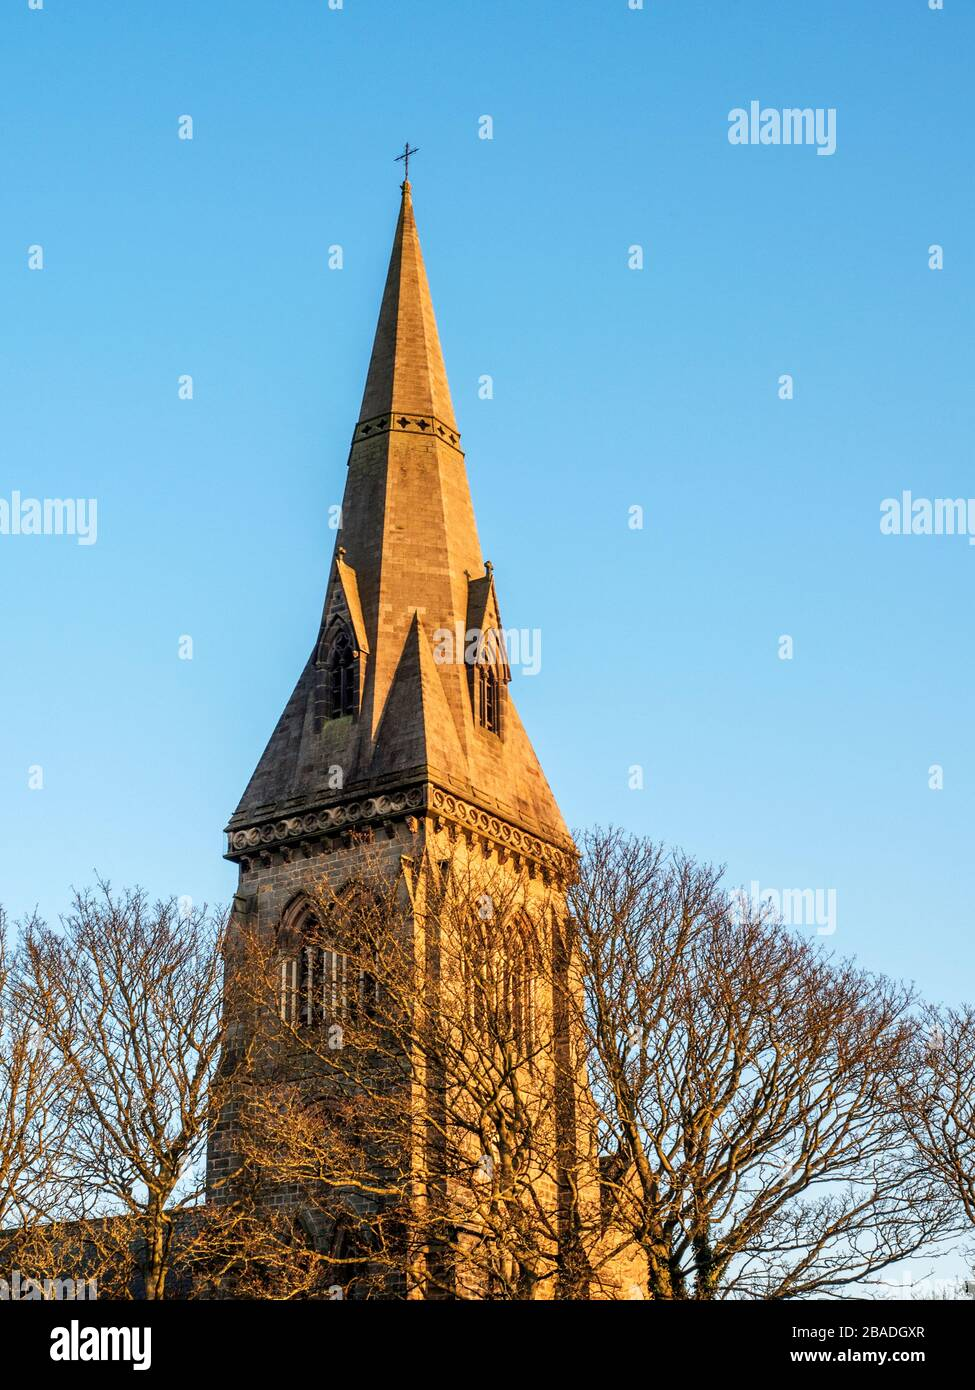 The broach spire of Holy Trinity Church above treetops lit by the setting sun in Knaresborough Yorkshire England Stock Photo